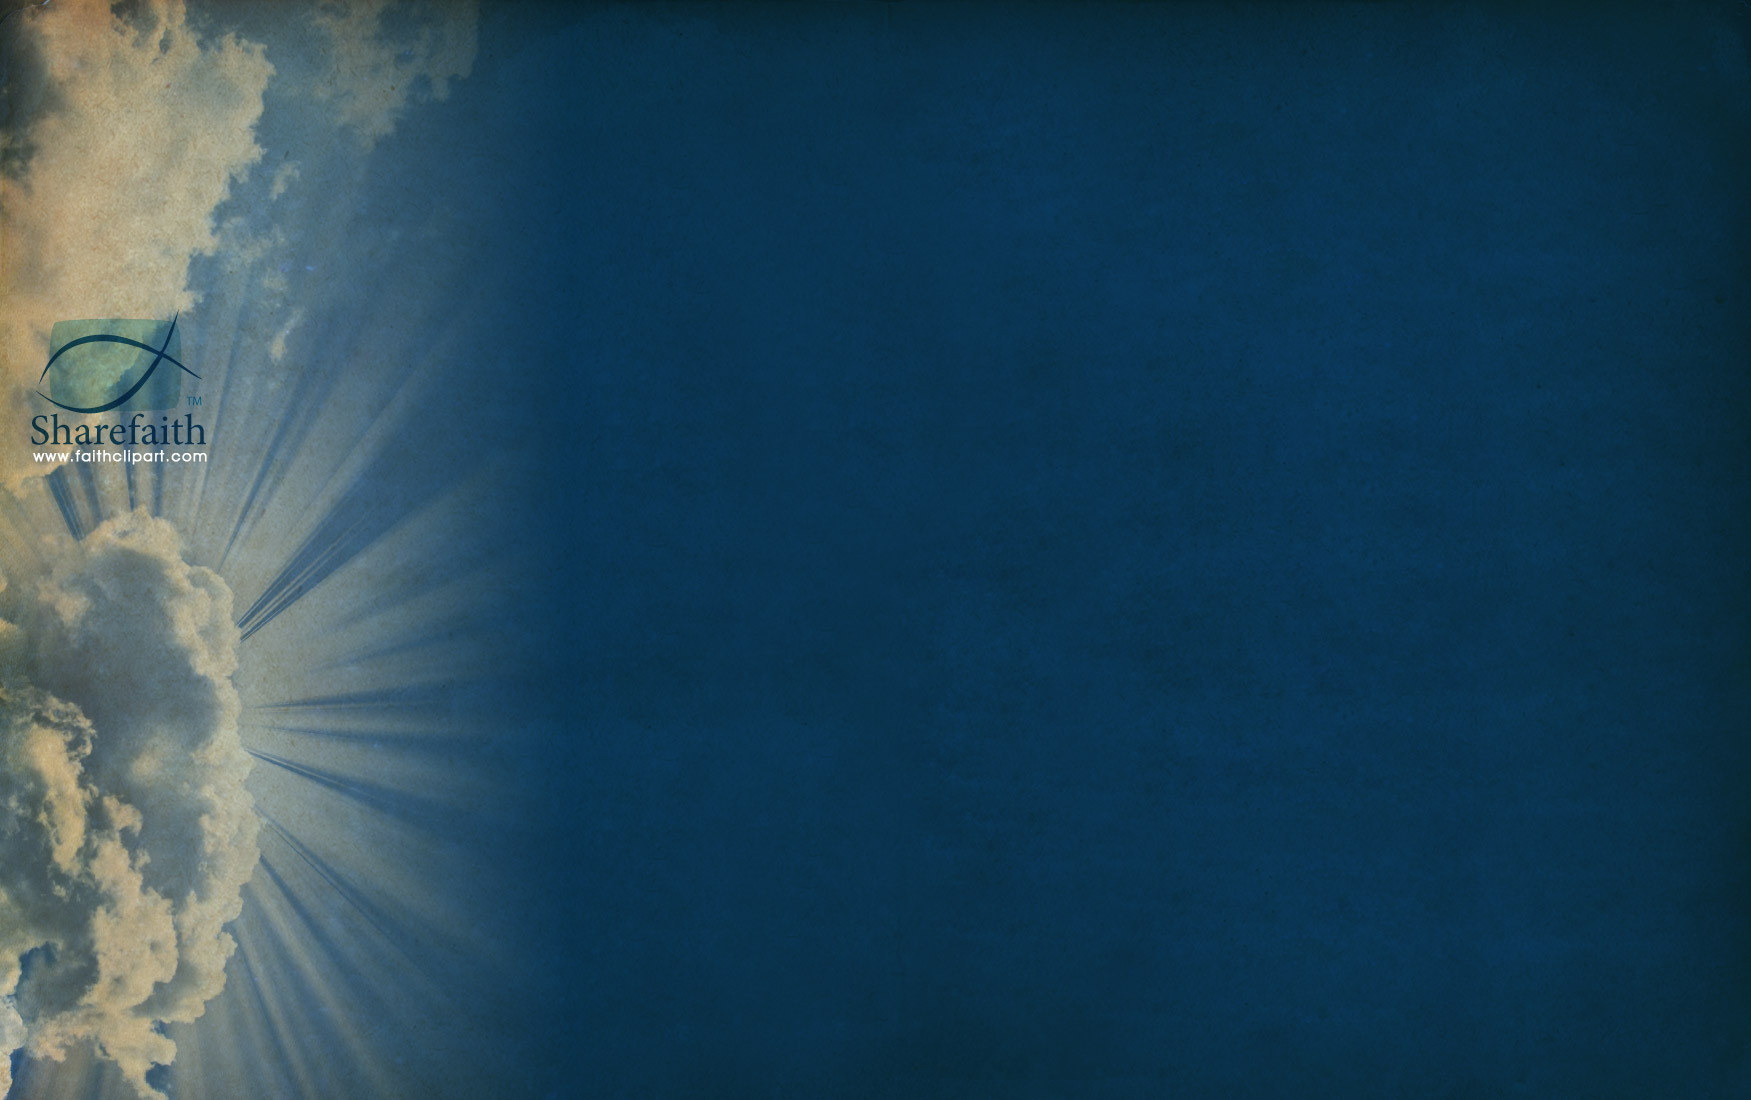 Free Christian Twitter Backgrounds | Free Religious Twitter